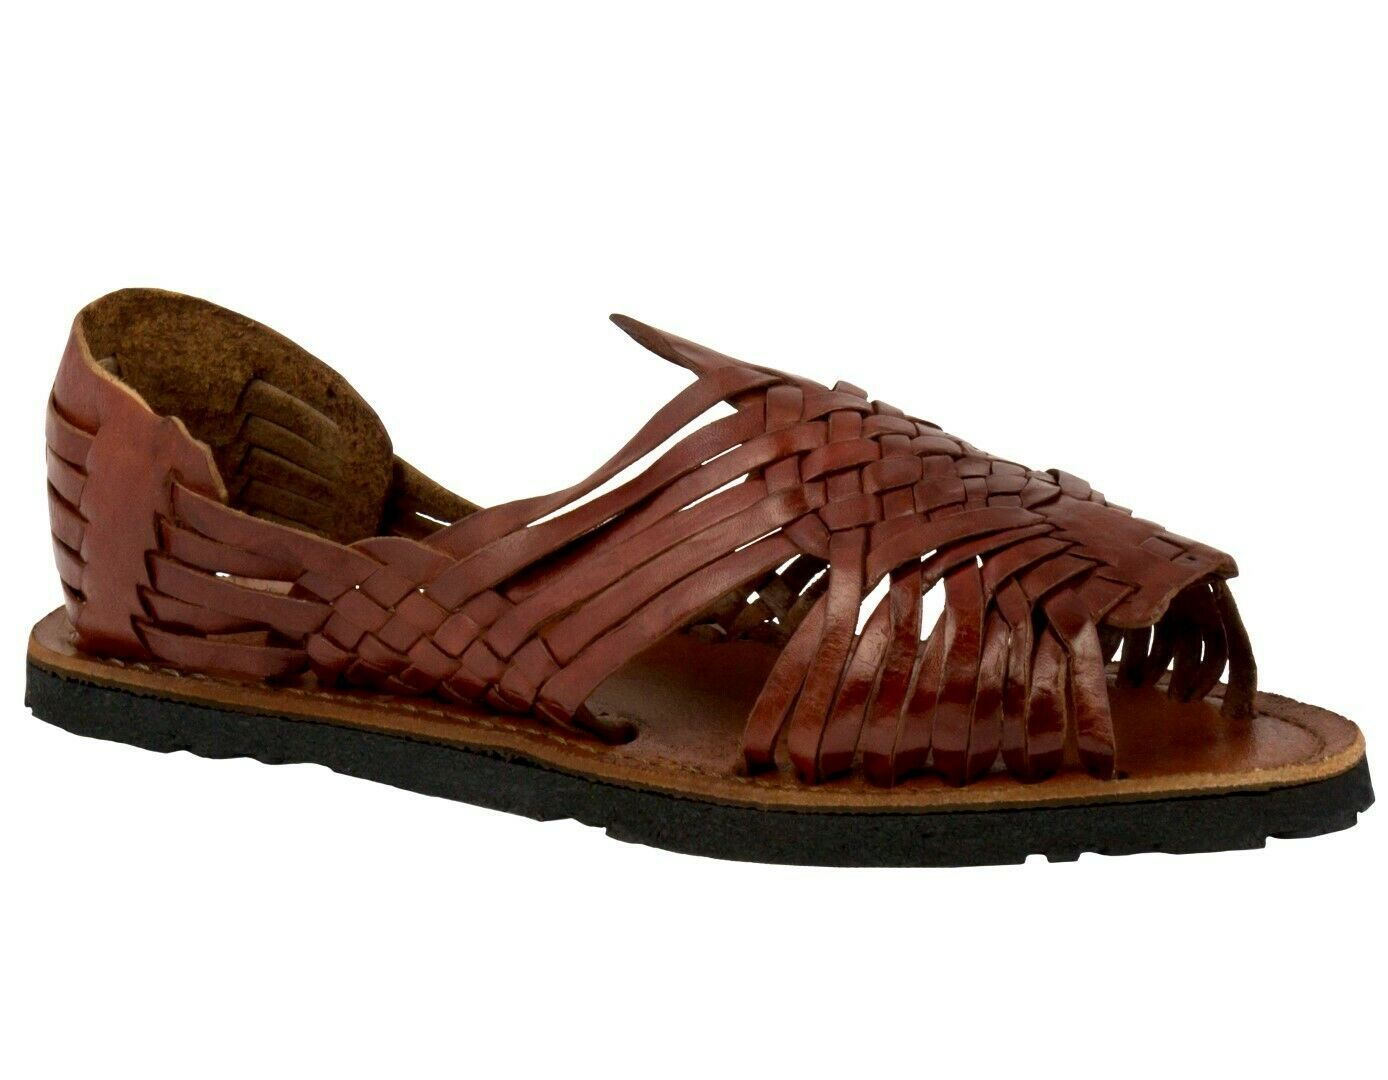 Men Cognac Sandals Mexican Huaraches Authentic Leather Handmade Slip On Open Toe